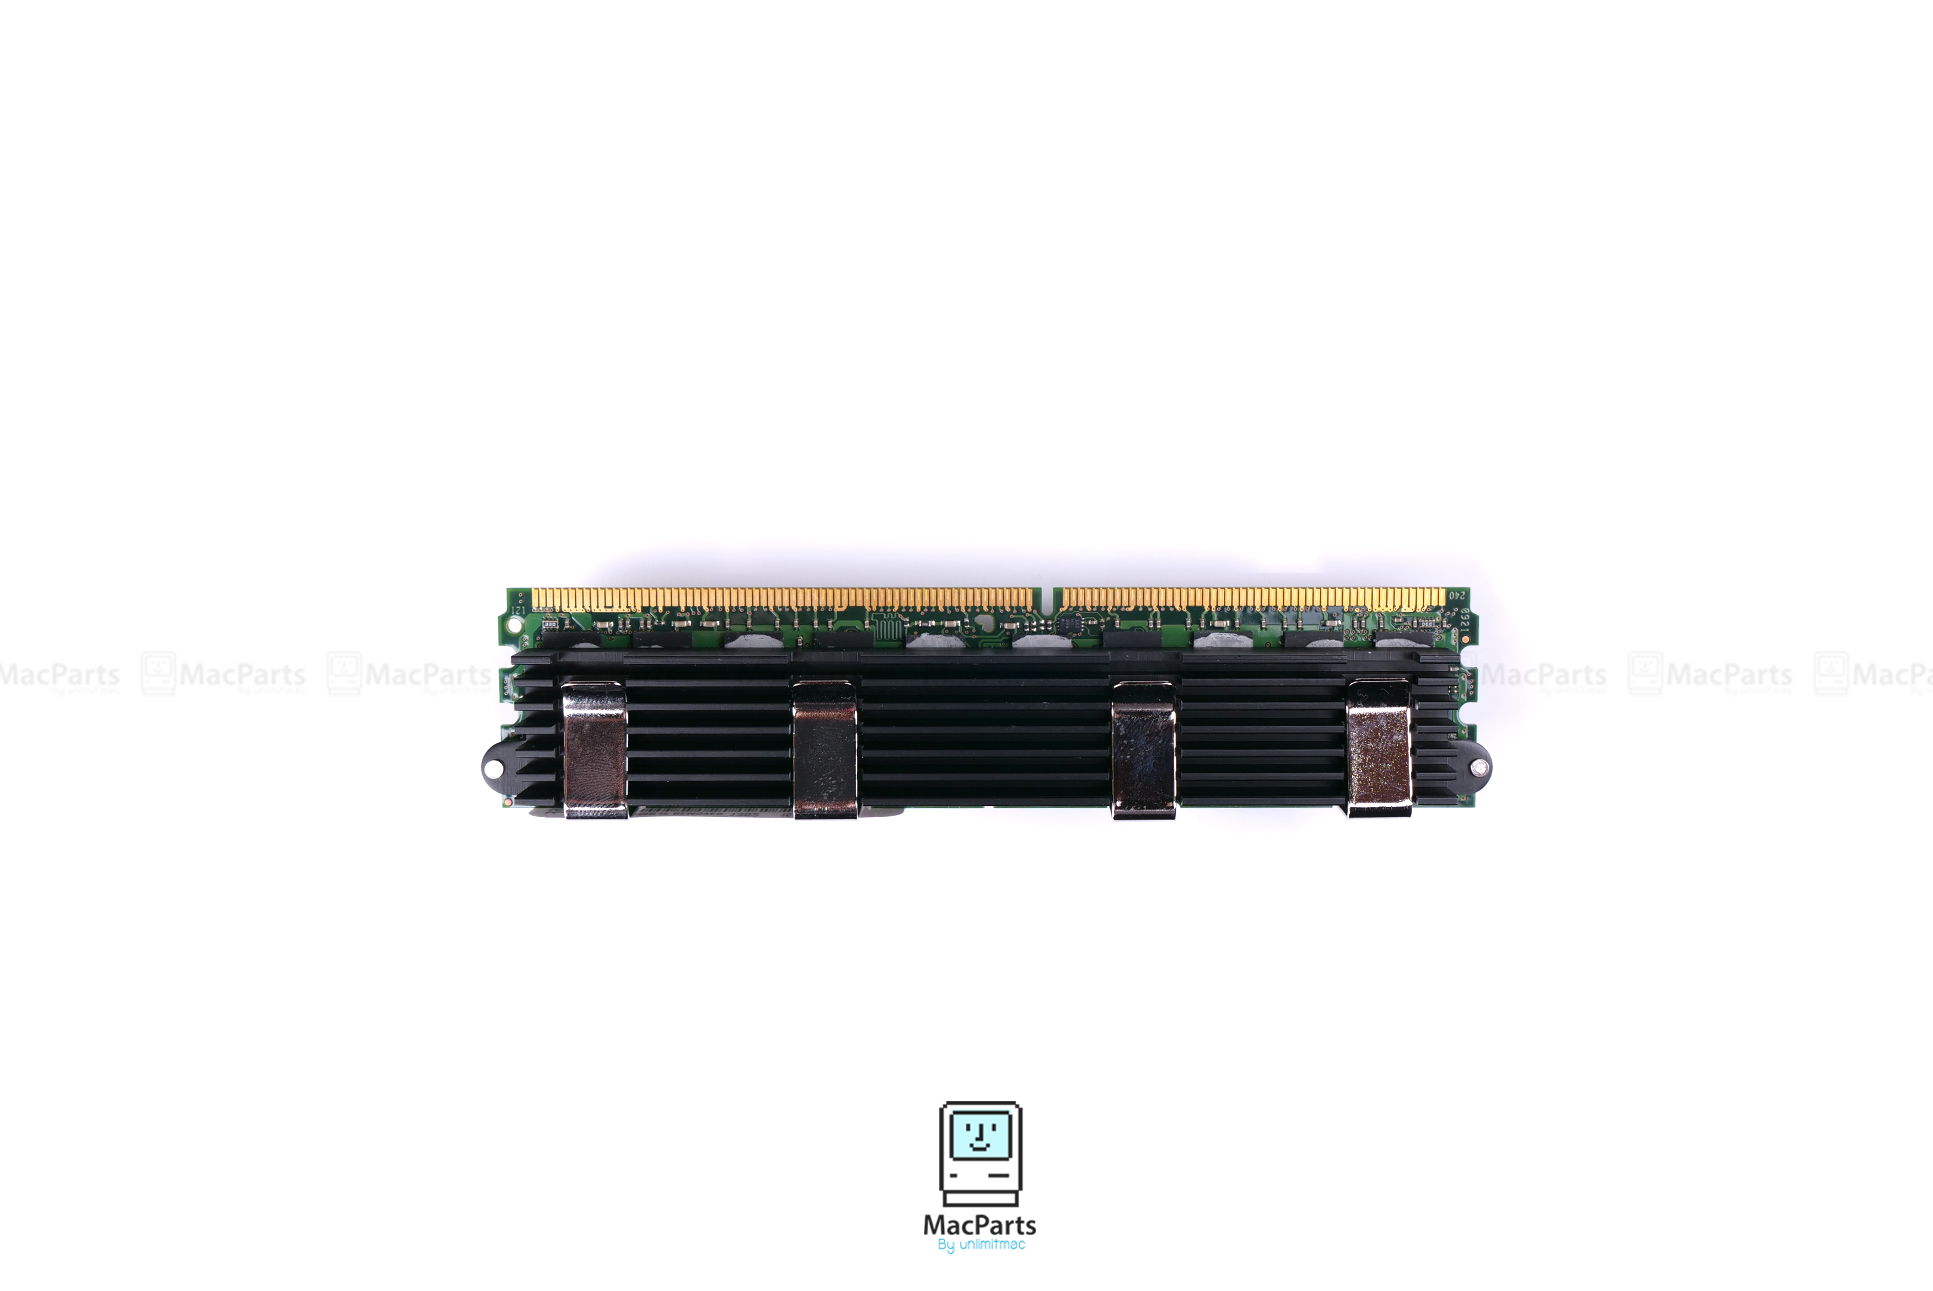 RAM ECC DDR2 4GB BUS 800 PC-6400F FOR MACPRO 2008 WARRANTI 1Y (MICRON)